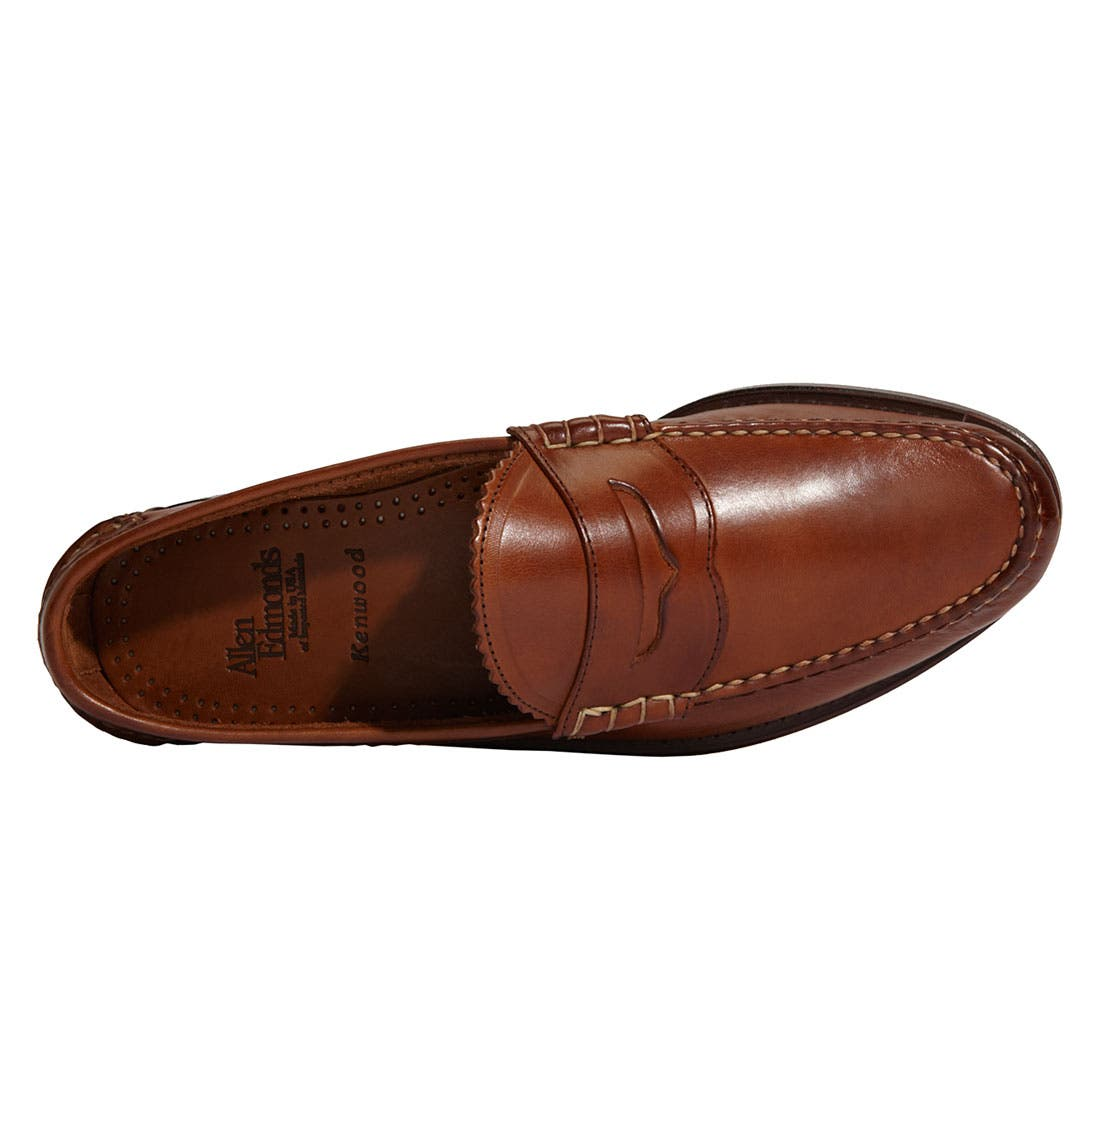 Alternate Image 3  - Allen Edmonds 'Kenwood' Penny Loafer (Men)